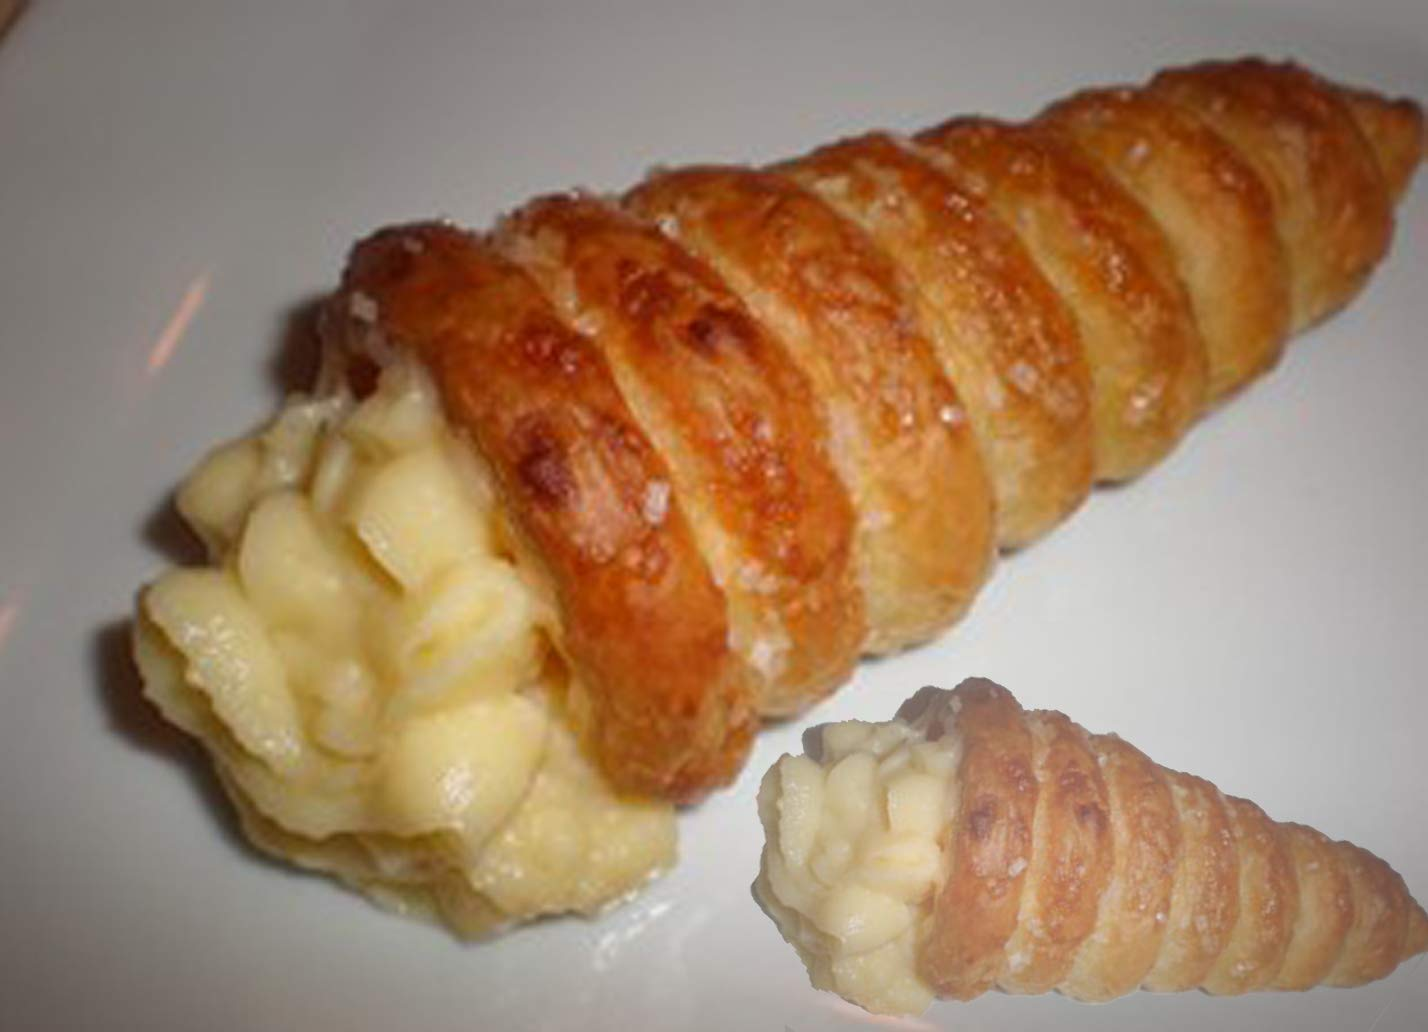 Extra large Cone Molds Set of 24 Pastry Forms - Cream Horn Molds. Stainless Steel by Craftit Edibles (Image #4)